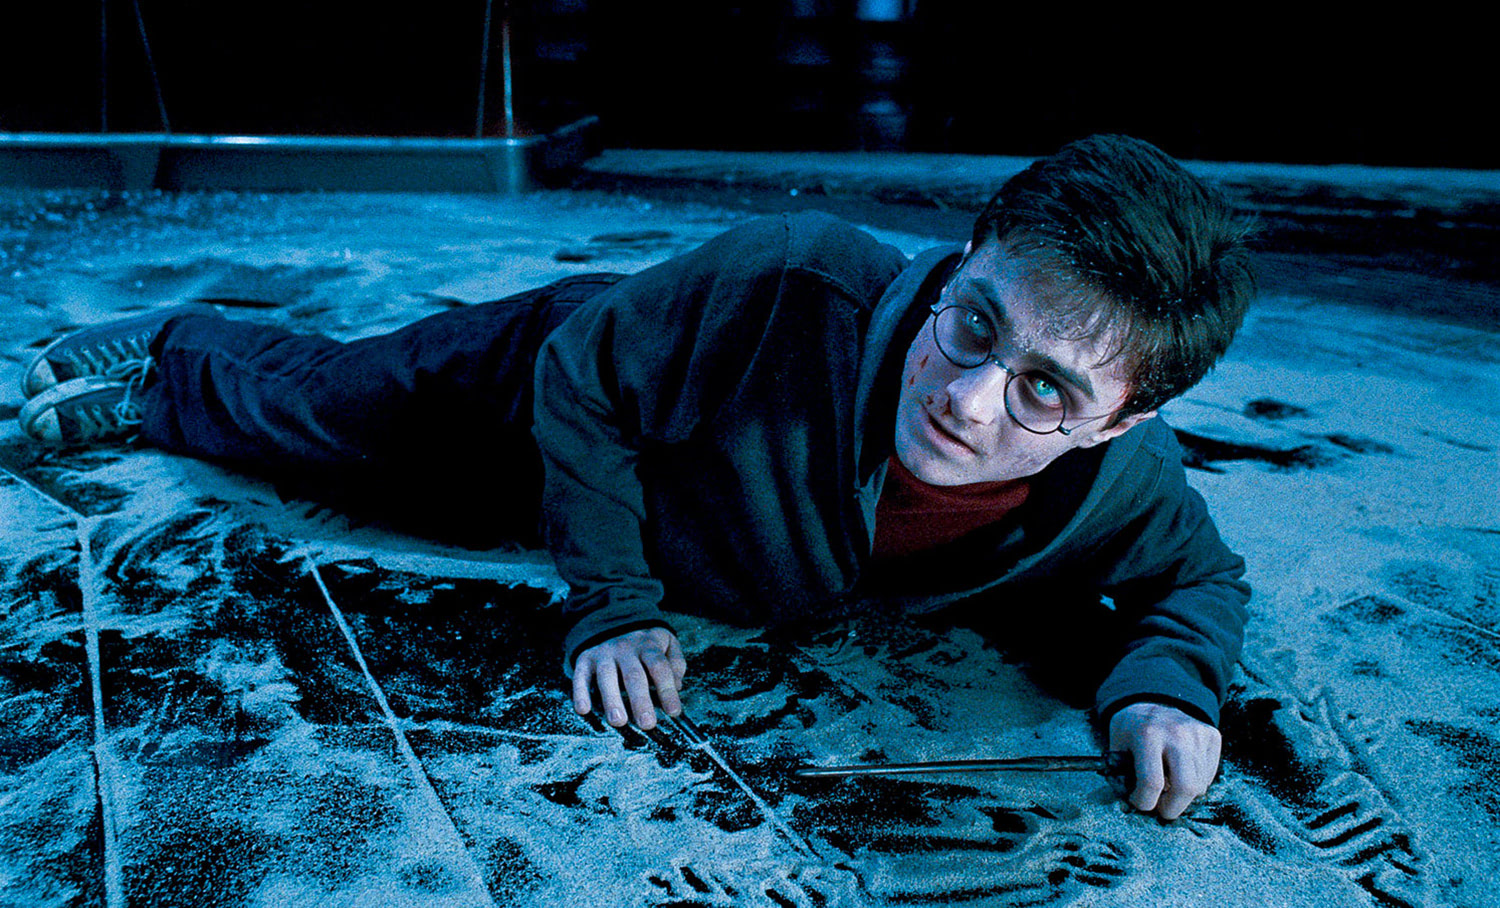 Harry possessed by Voldemort